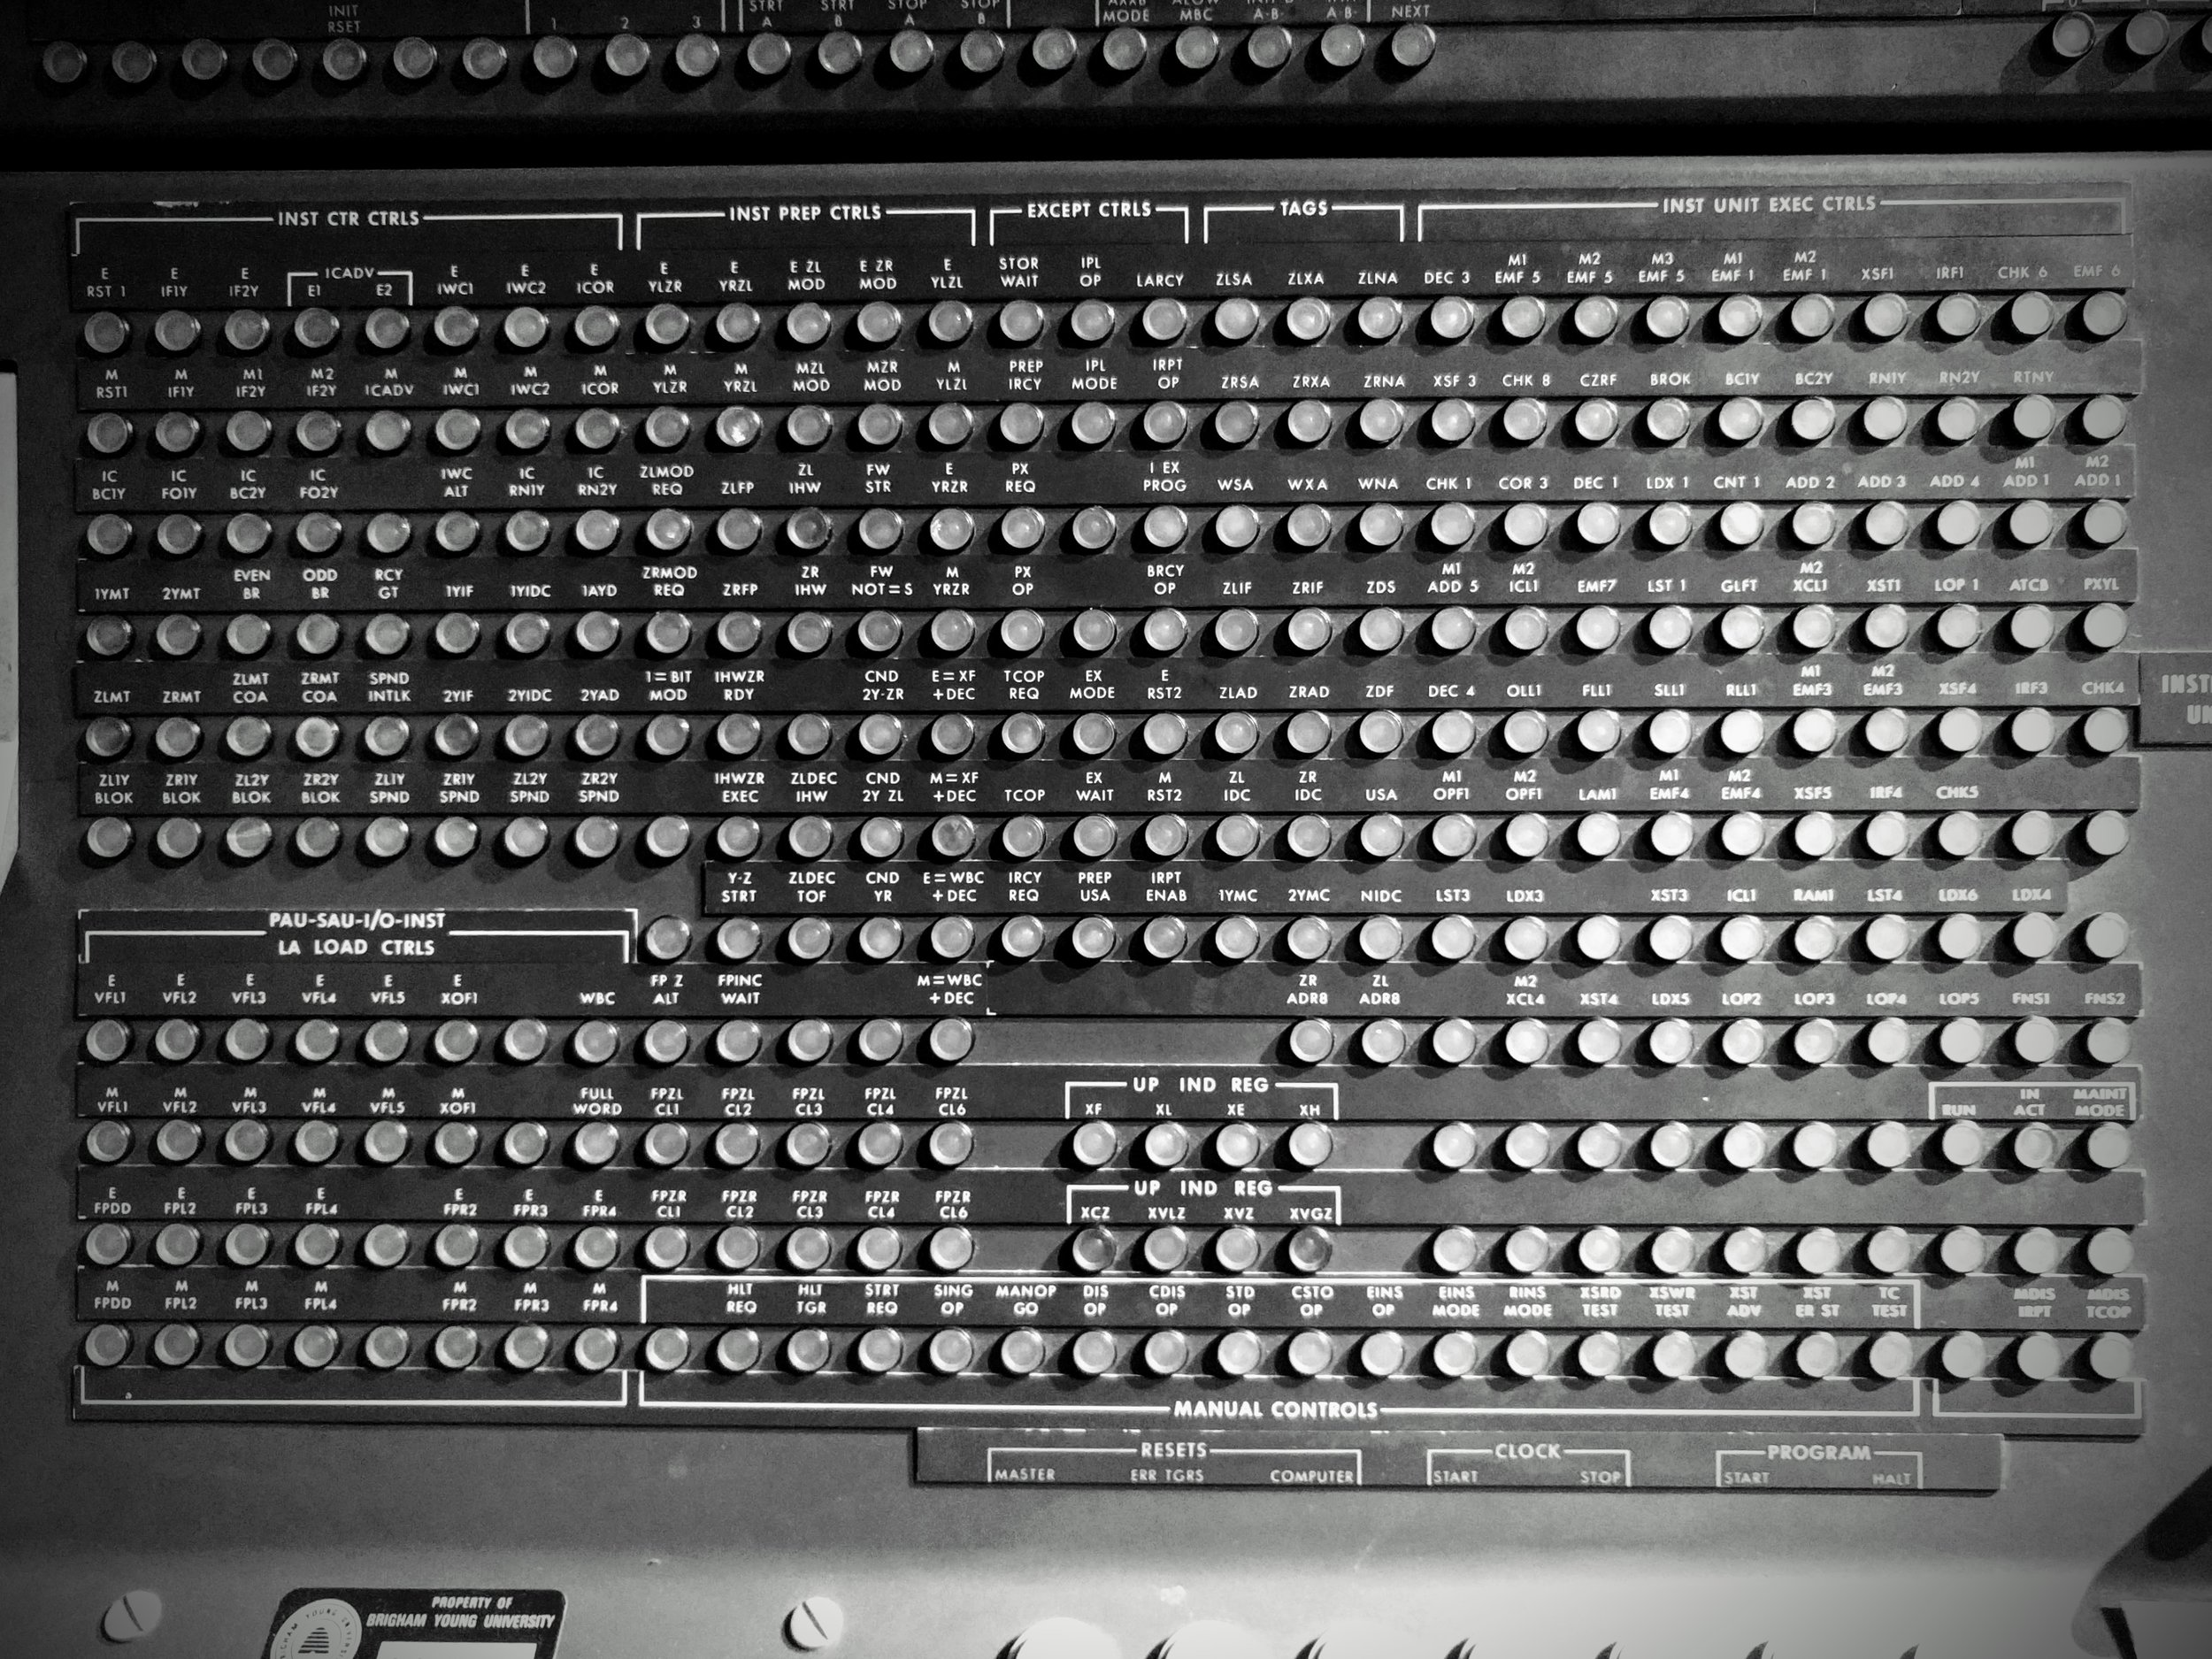 You can't beat the aesthetic of early computers.